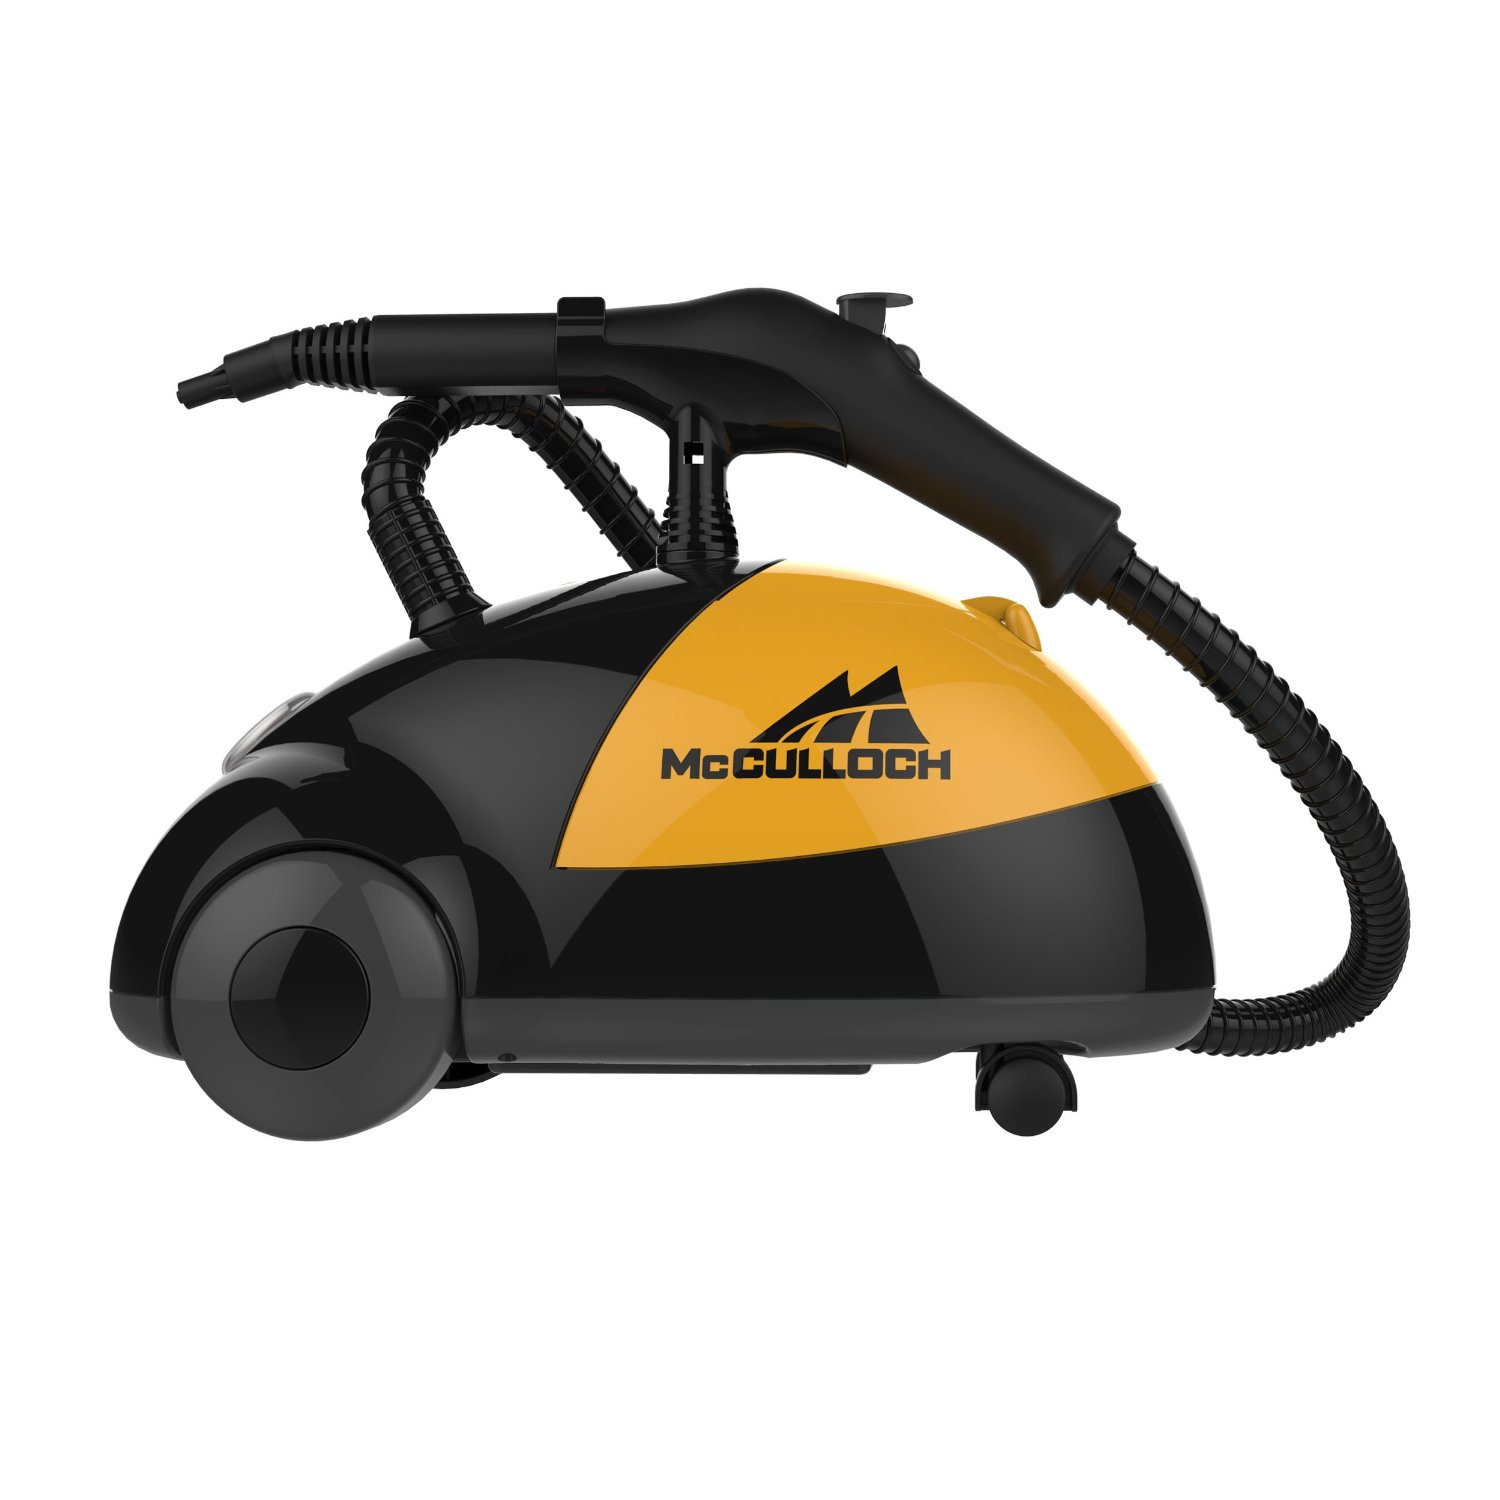 Top 10 Best Steam Cleaner Reviews — Which One to Pick in 2020?